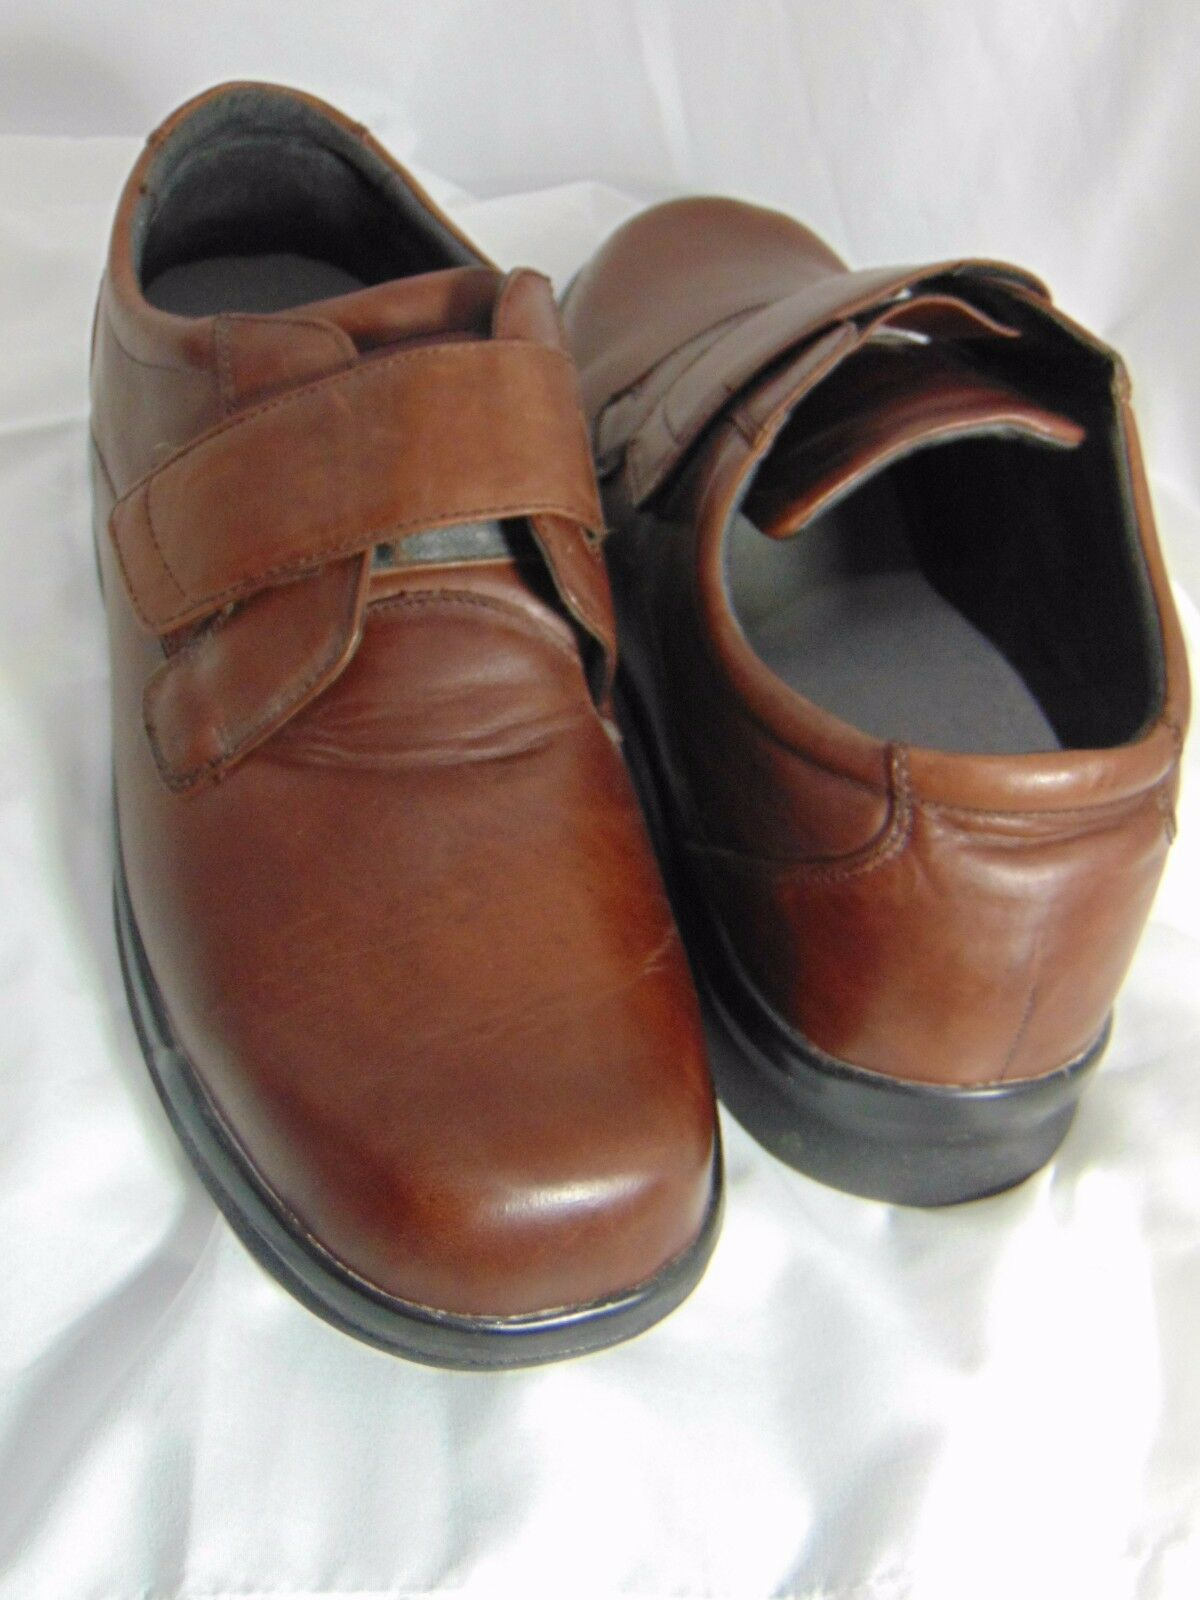 APEX Ambulator Men's Single One Strap Oxford Size 14 X-Wide Brown Leather B3100M